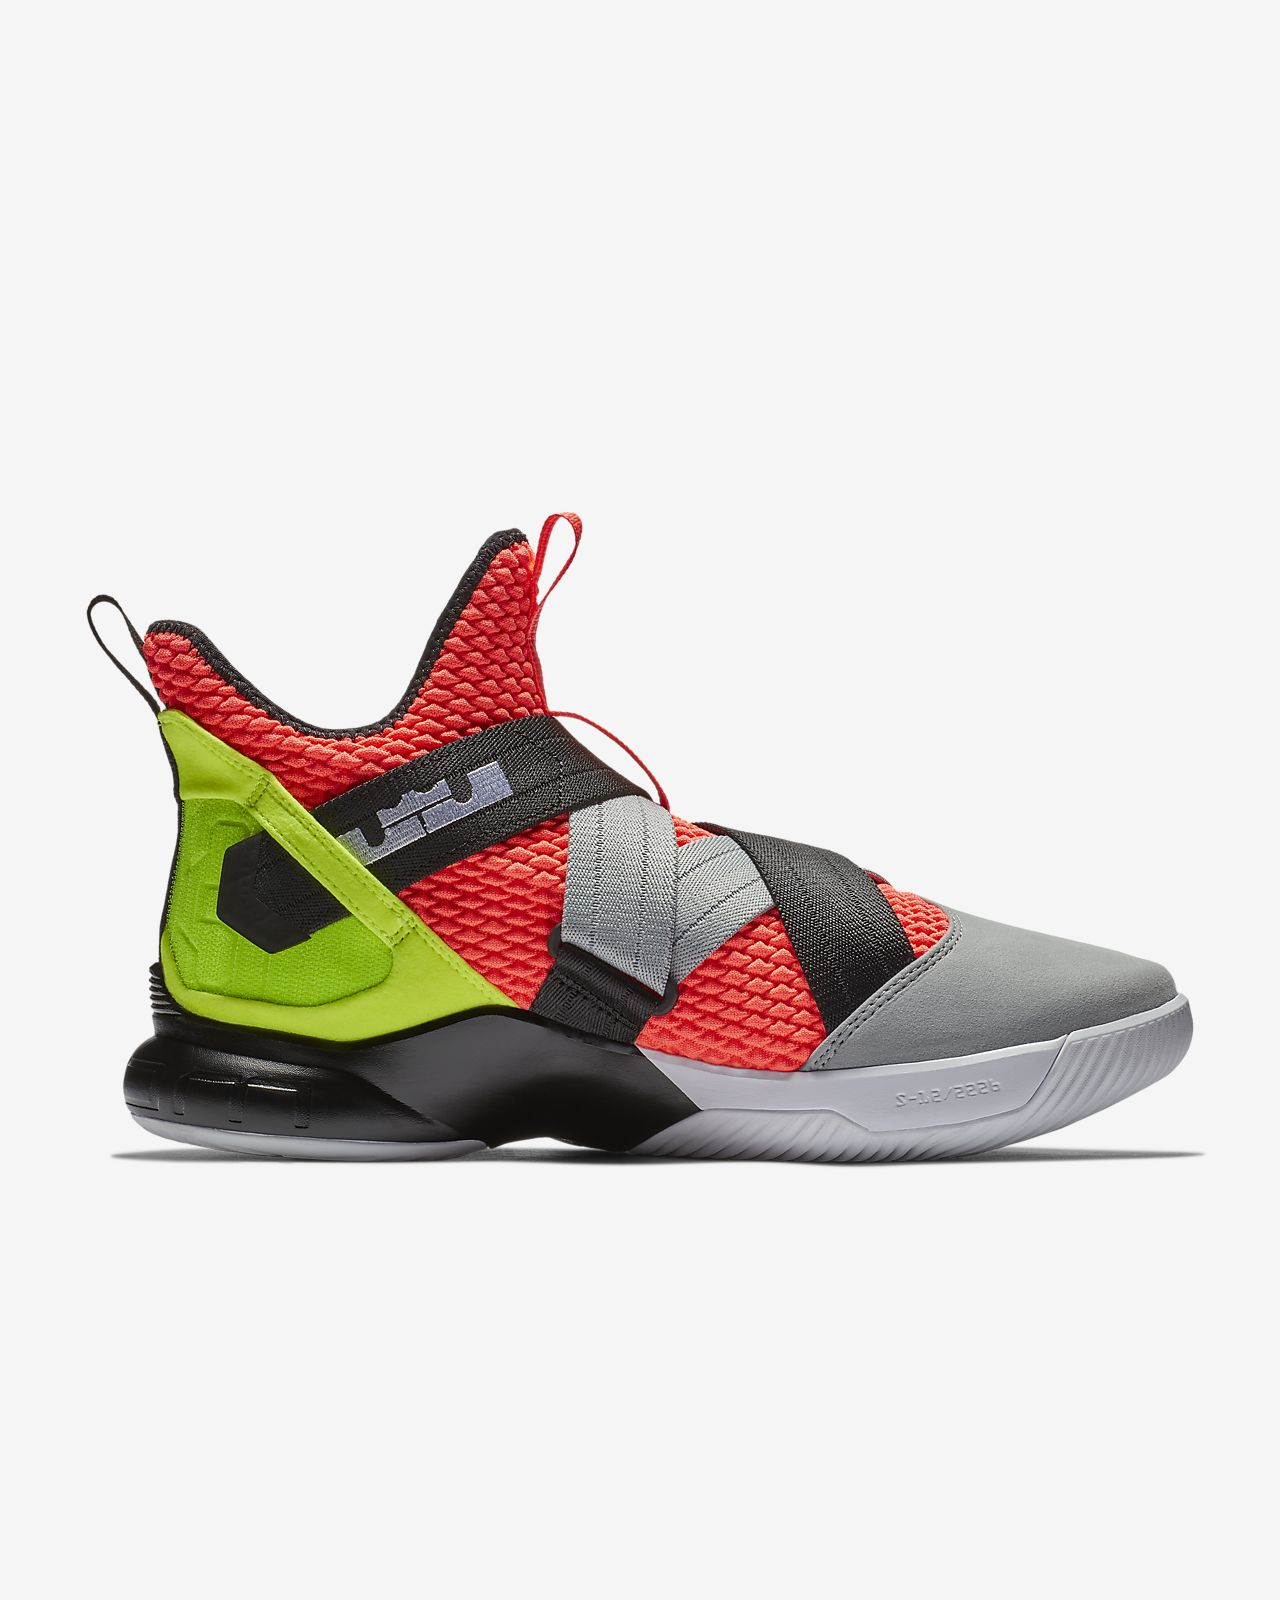 timeless design 424ee a6a79 LeBron Soldier 12 SFG Basketball Shoe